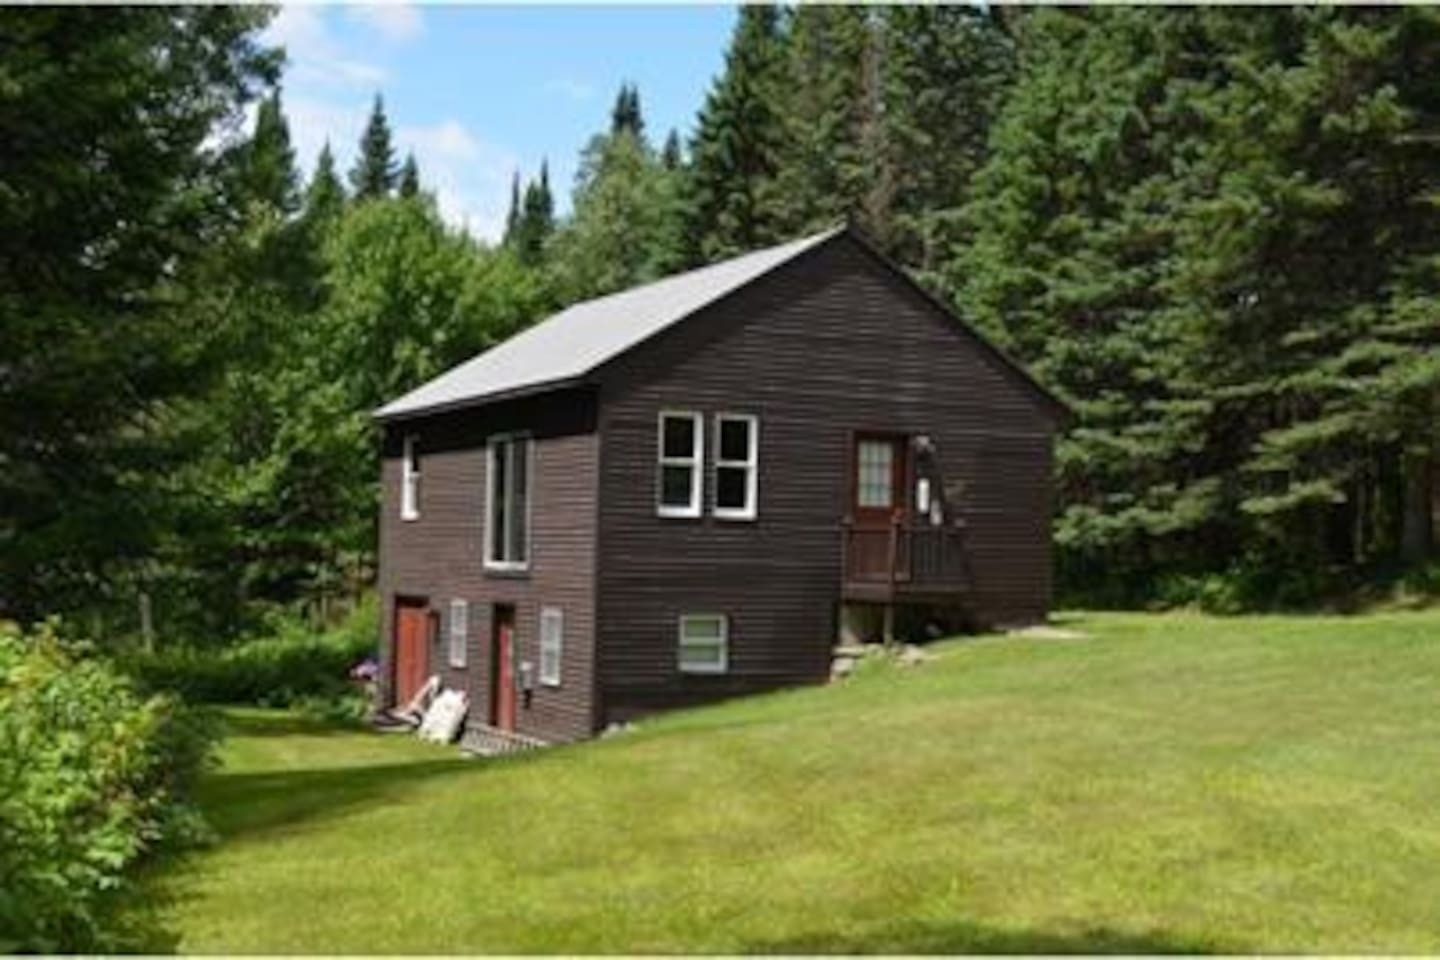 Secluded Cabin on 5 acres with abundant wildlife.